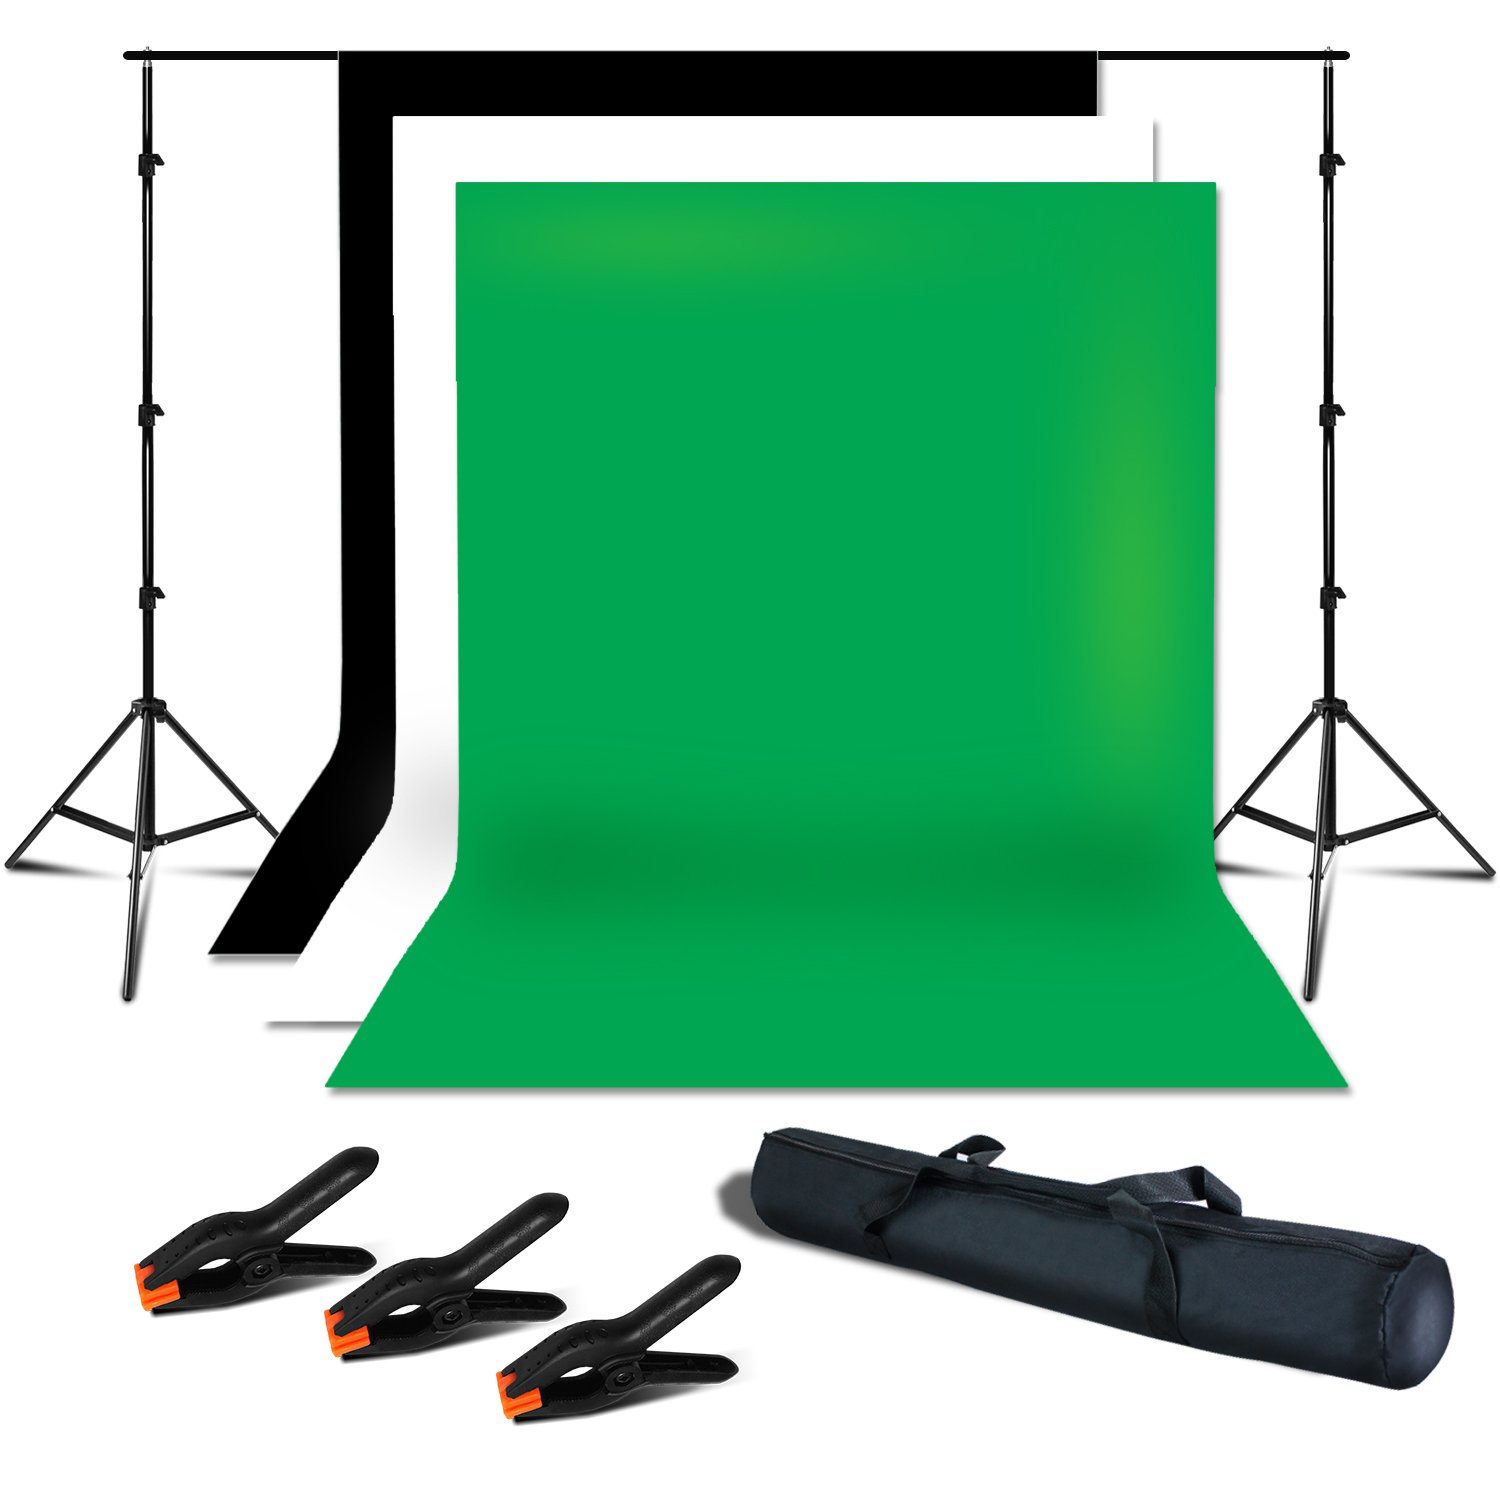 Julius Studio Photo Studio 7.5 x 10 ft. Adjustable Background Support Stand, Backdrop Support System Kit with 6 x 9 ft. White, Black, Green Muslin Backdrop and Background Spring Clamps, JSAG286